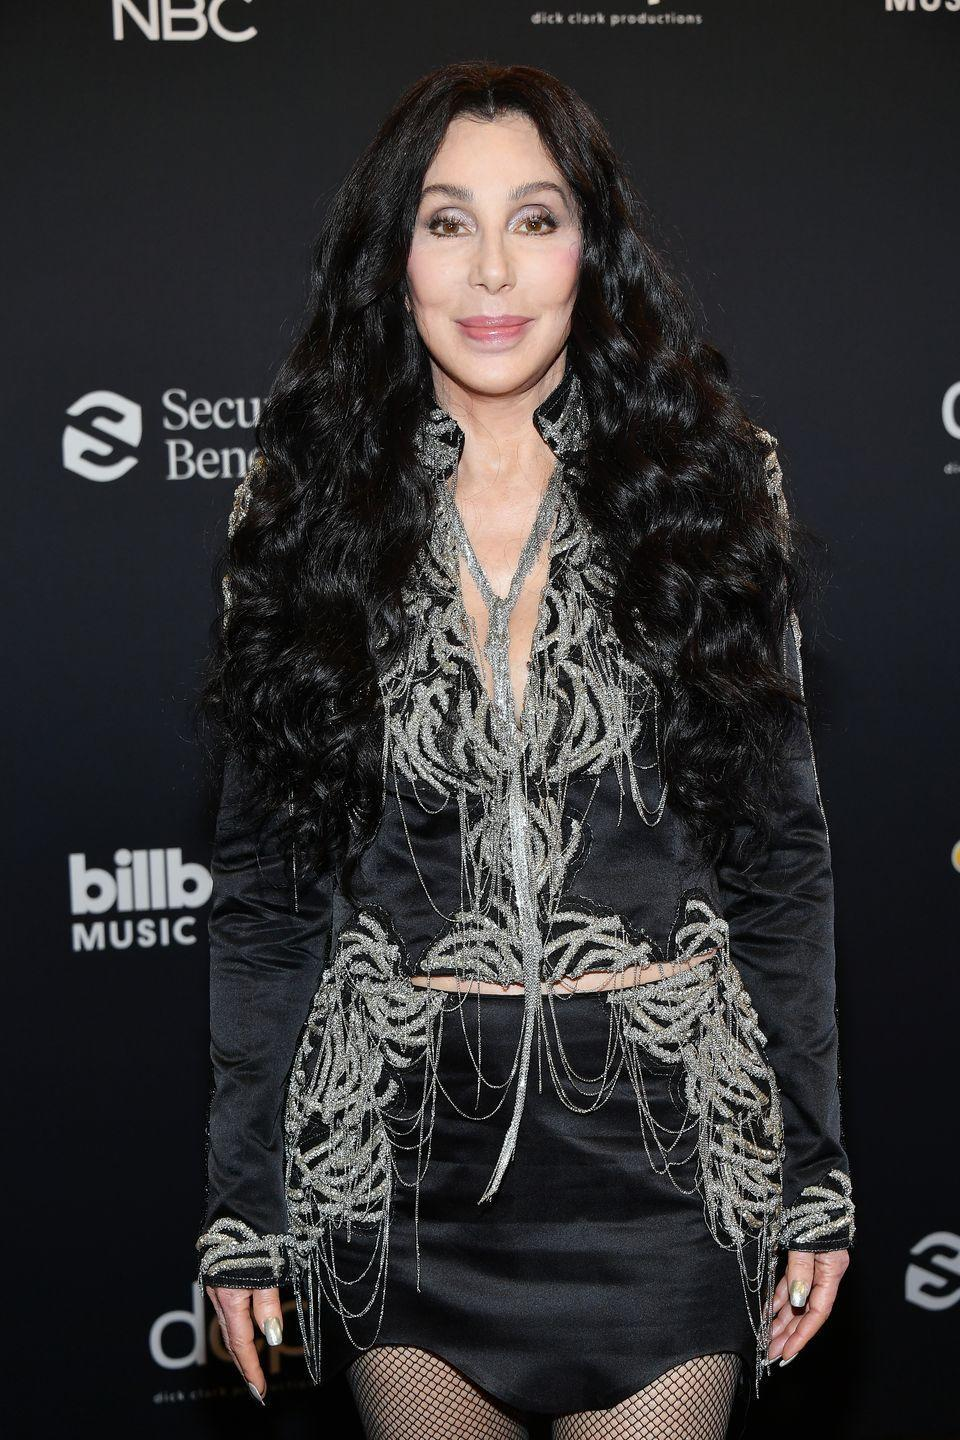 Photo credit: Amy Sussman/BBMA2020 - Getty Images